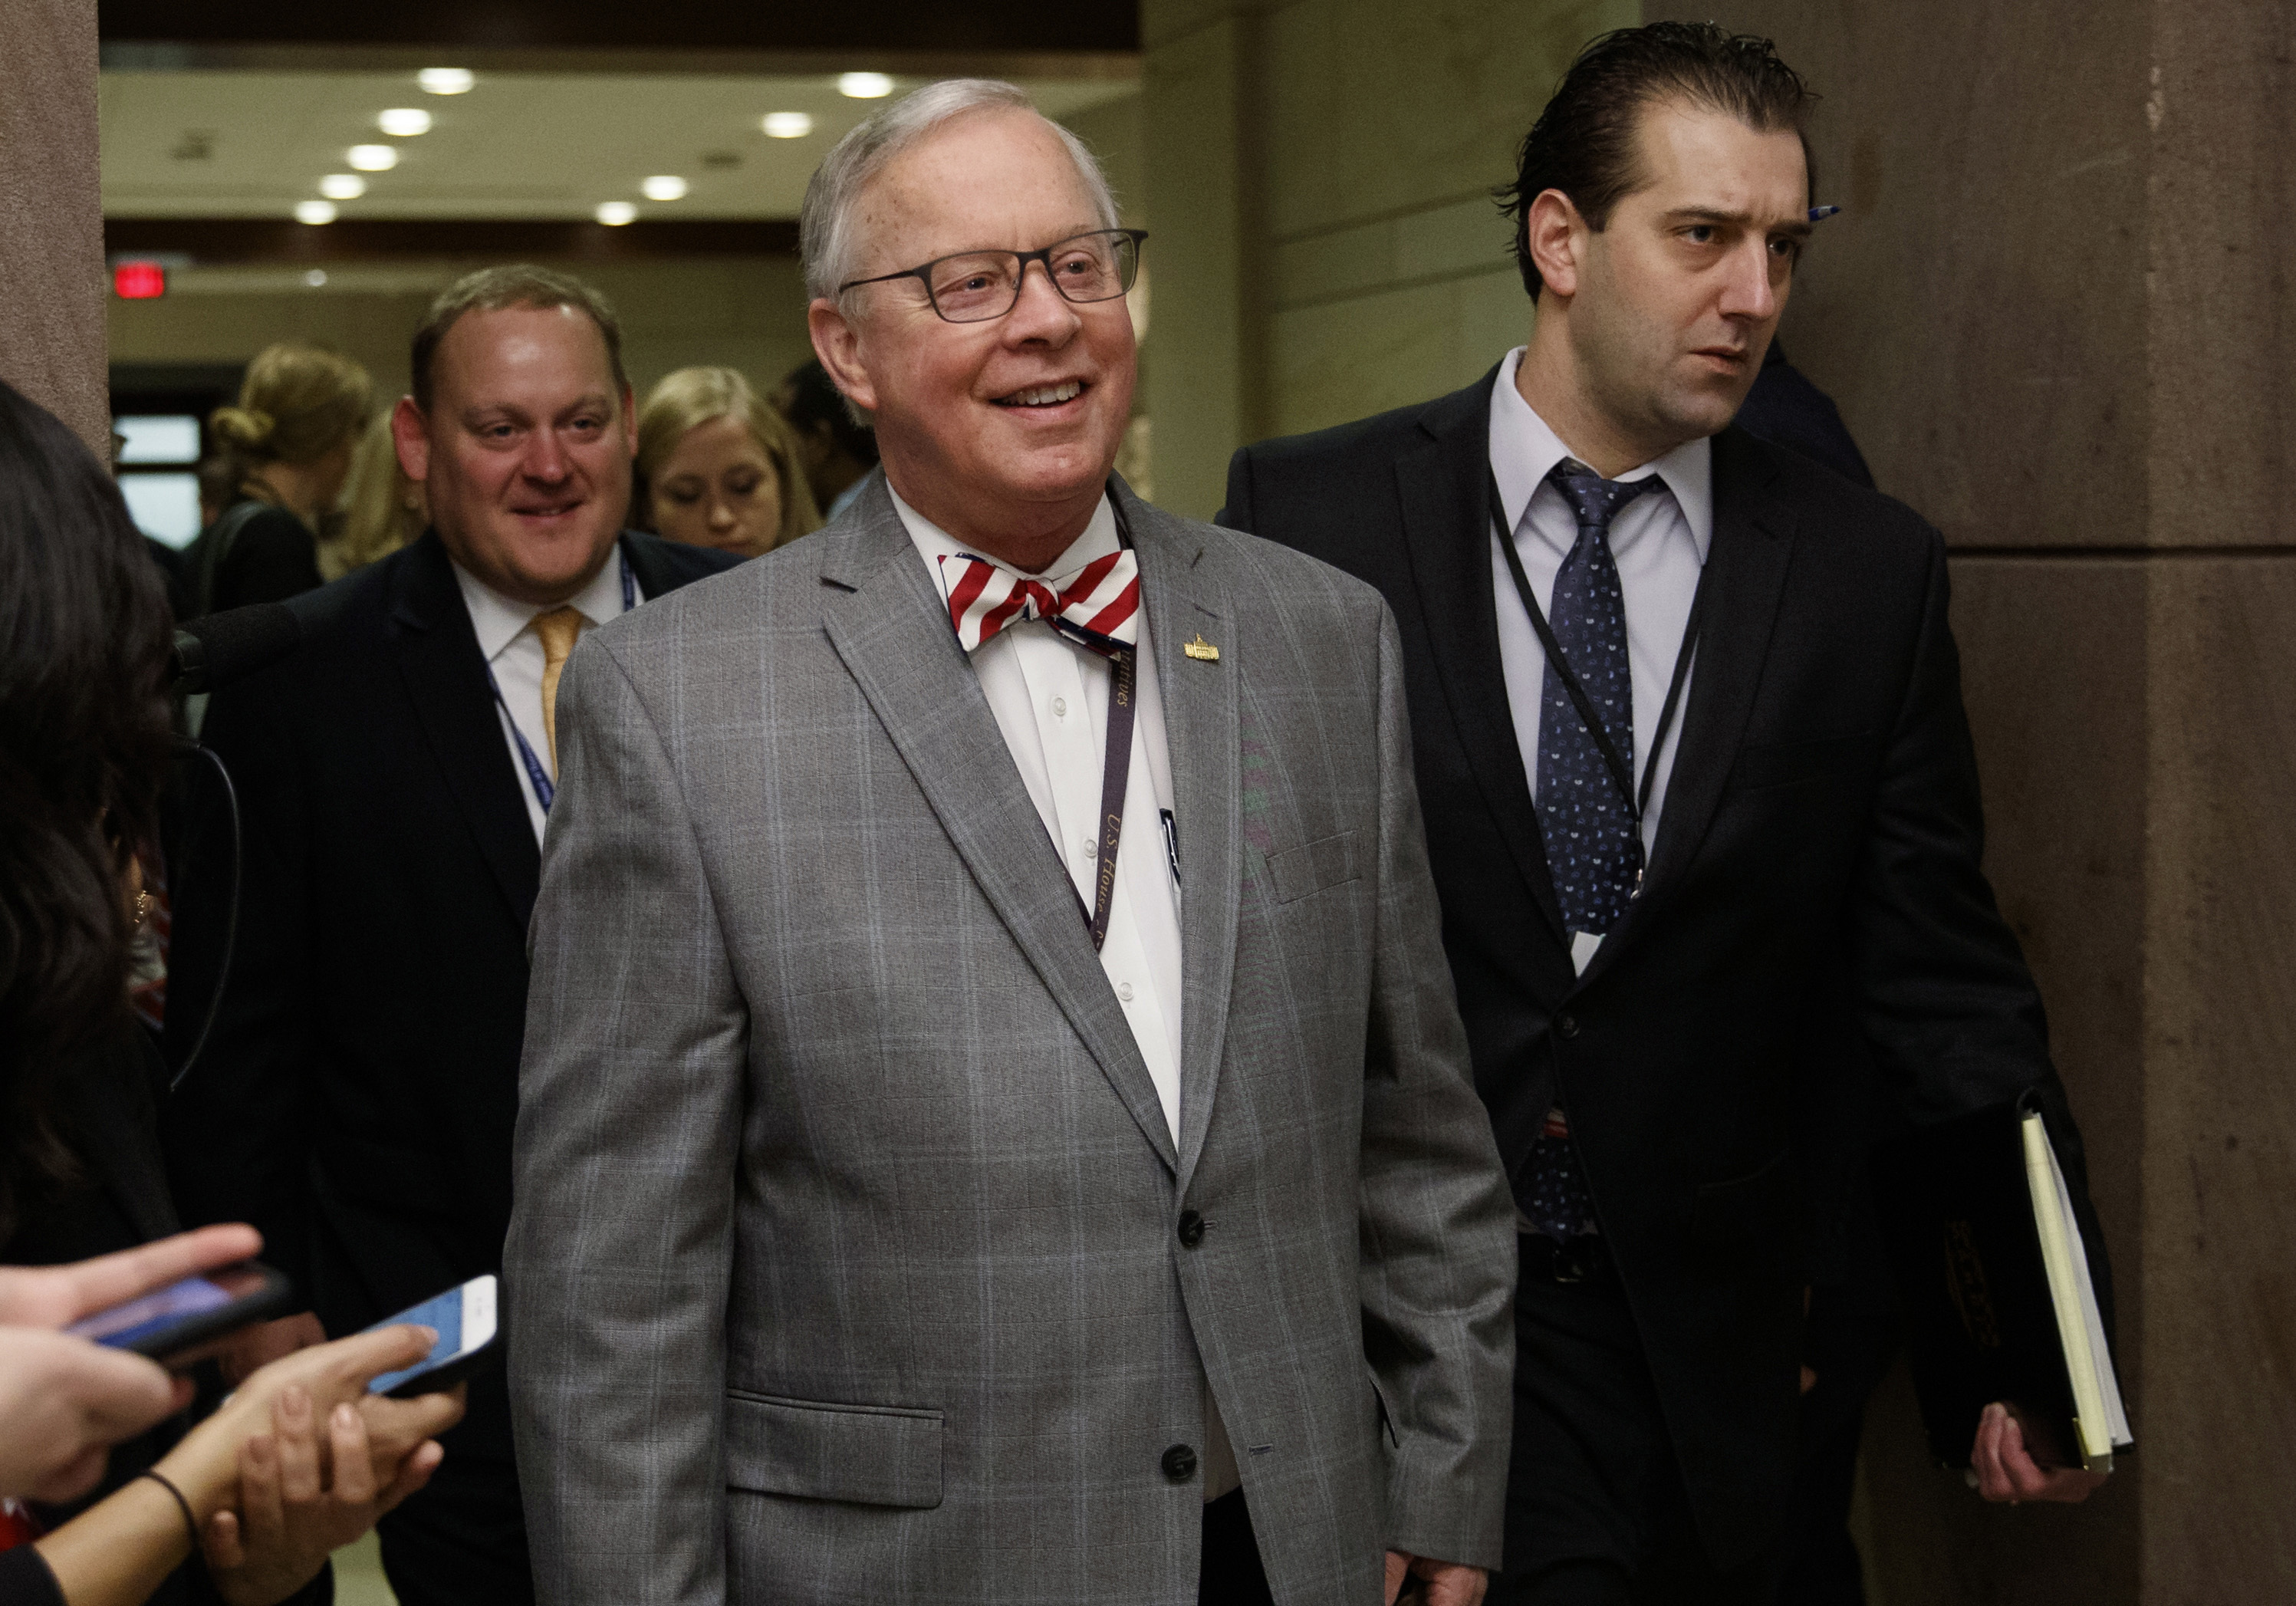 U.S. Rep. Ron Wright, R-Texas, walks to a session during member-elect briefings and orientation on Capitol Hill in Washington.